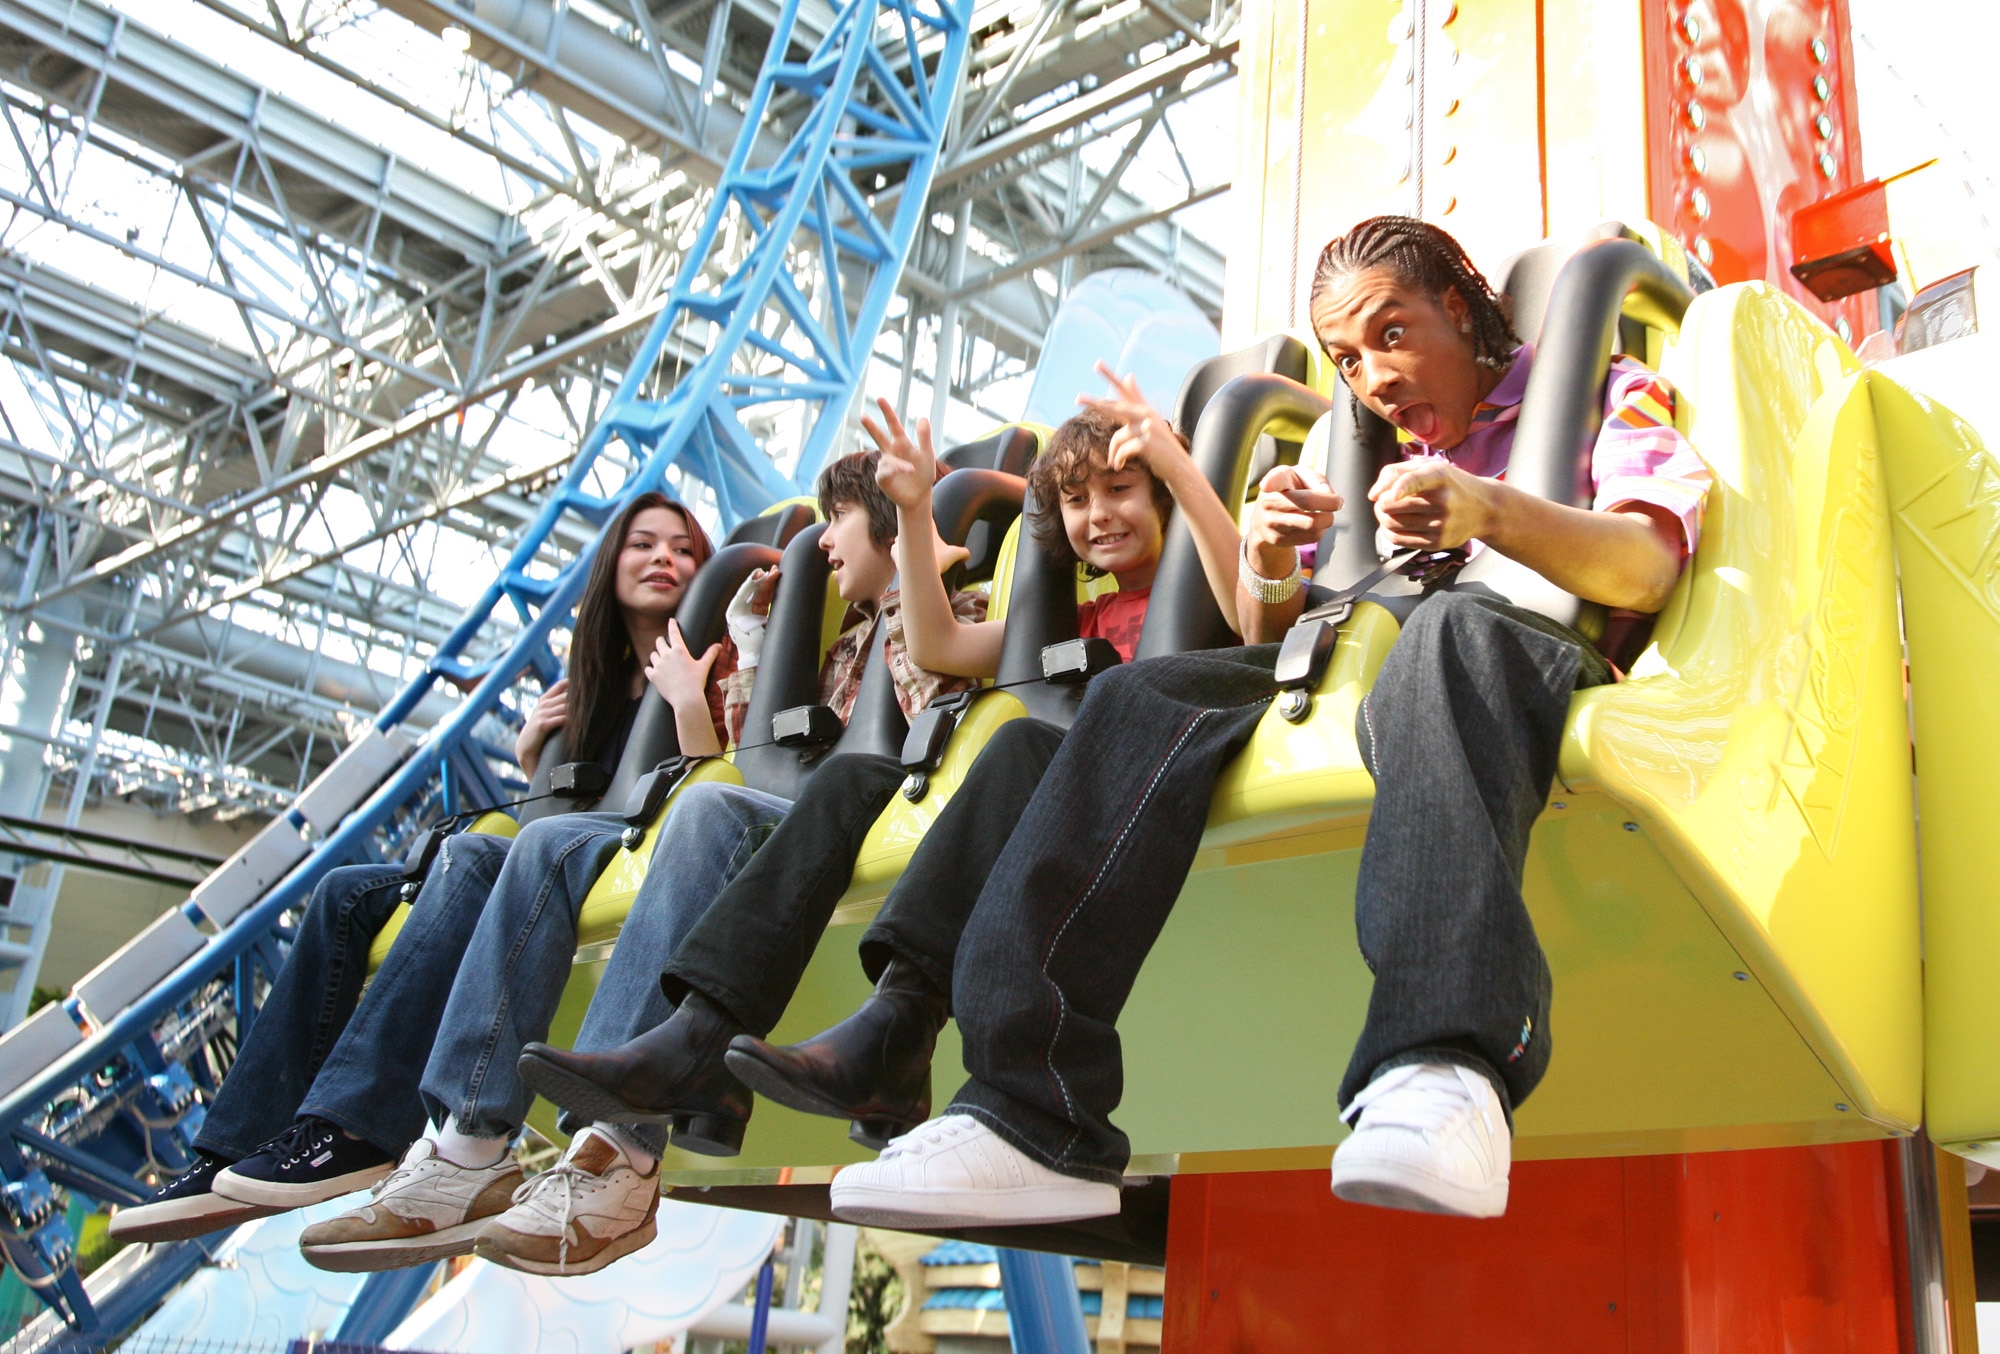 Actress Miranda Cosgrove, actor Nat Wolff, actor Alex Wolff, and recording artist Lil' JJ attend the grand opening of Nickelodeon Universe at the Mall of America March 15, 2008 in Bloomington, Minnesota.